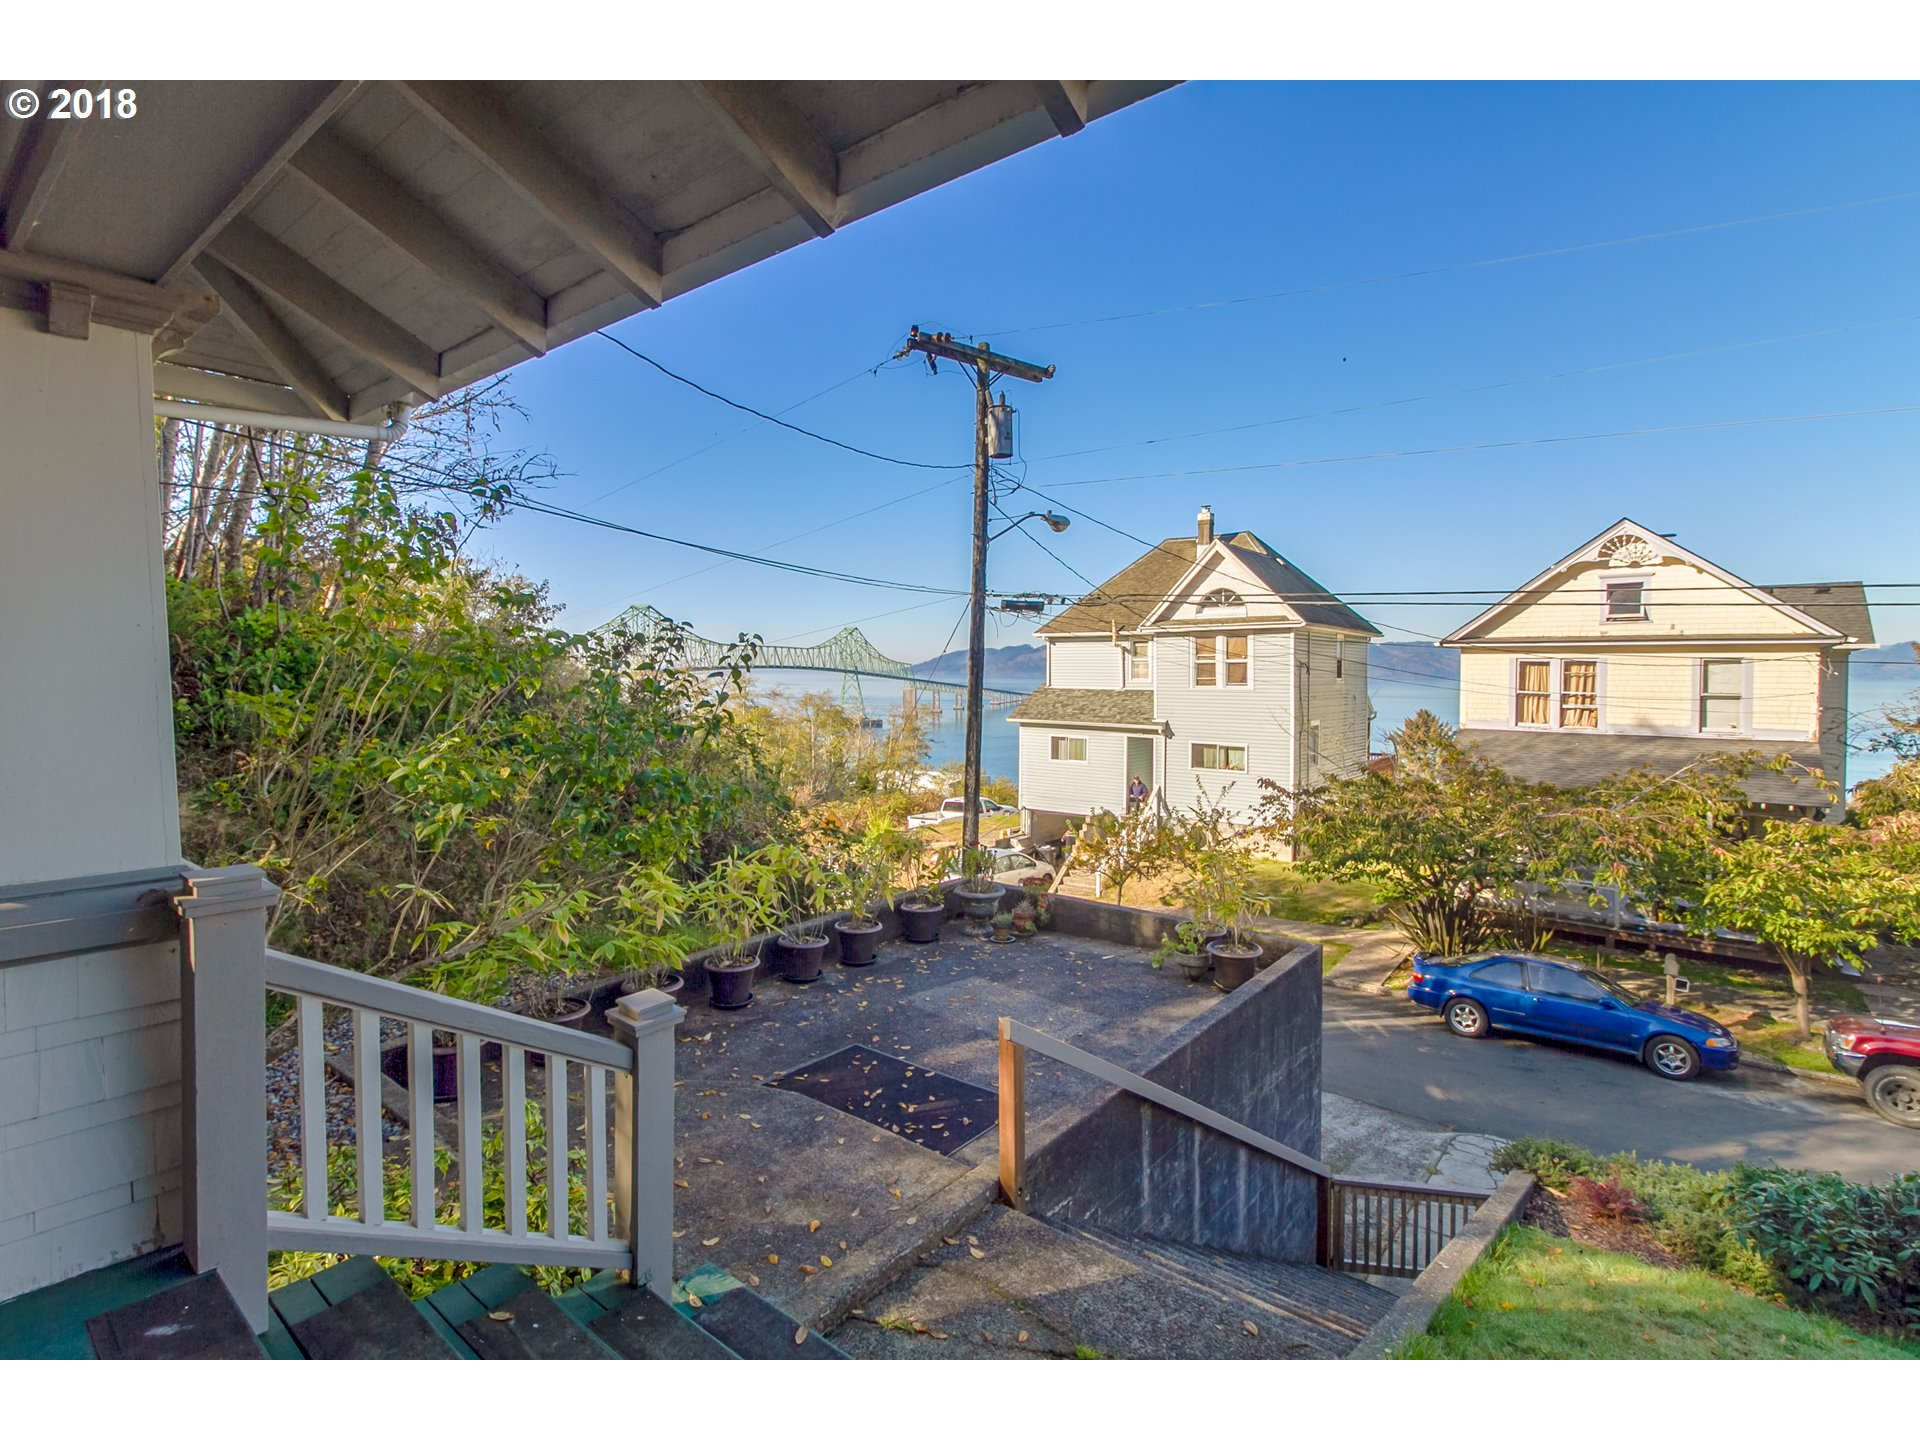 135 Duane ST Astoria, OR 97103 - MLS #: 18532077